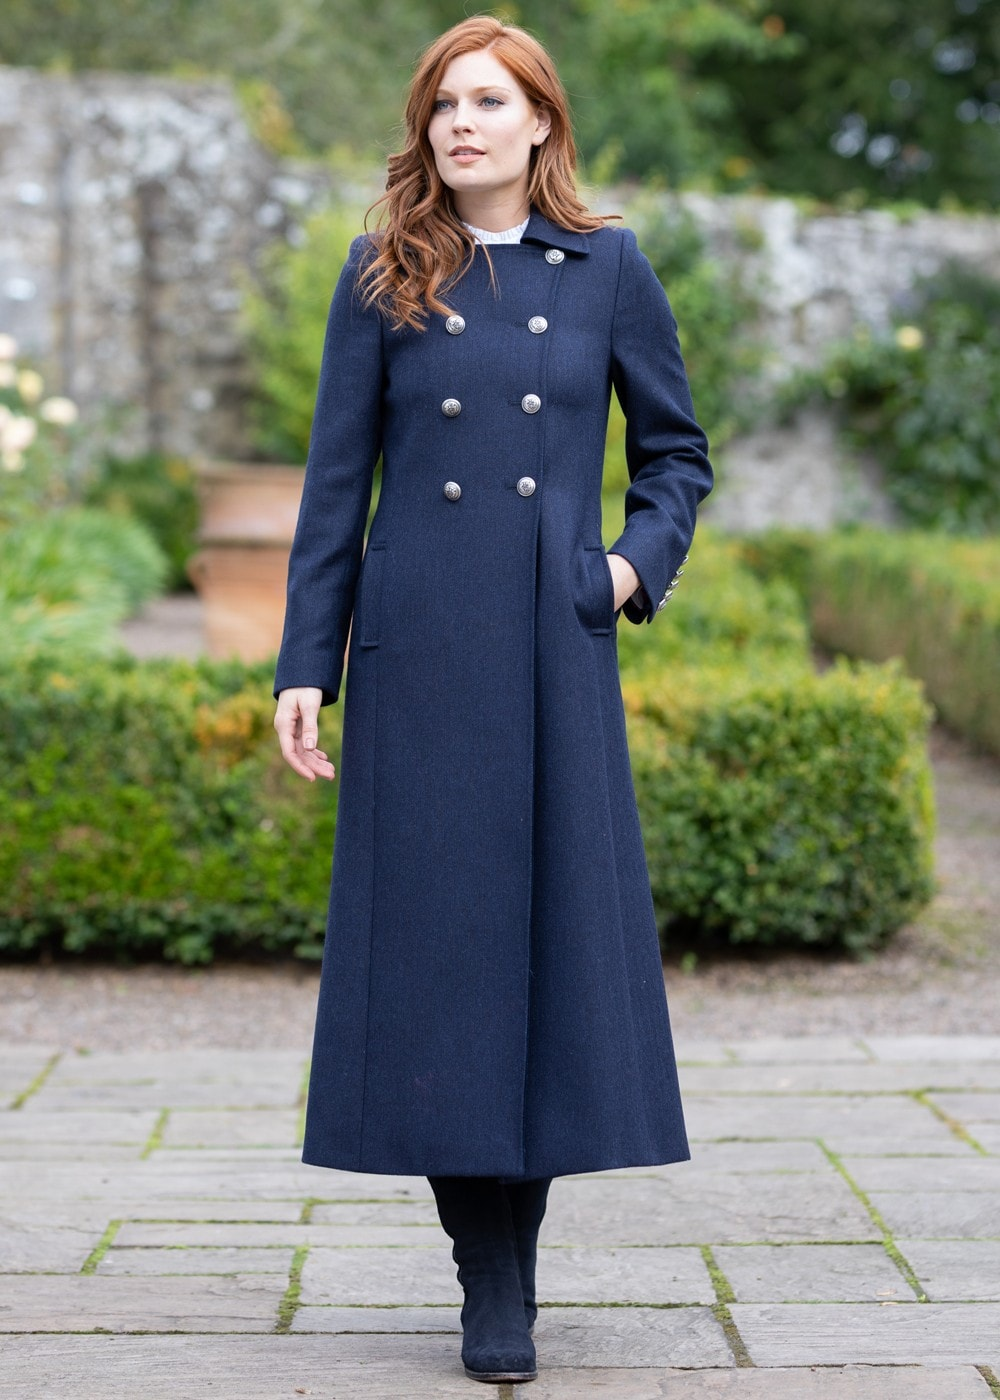 Guinea Trench Coat Ladies from A Hume UK